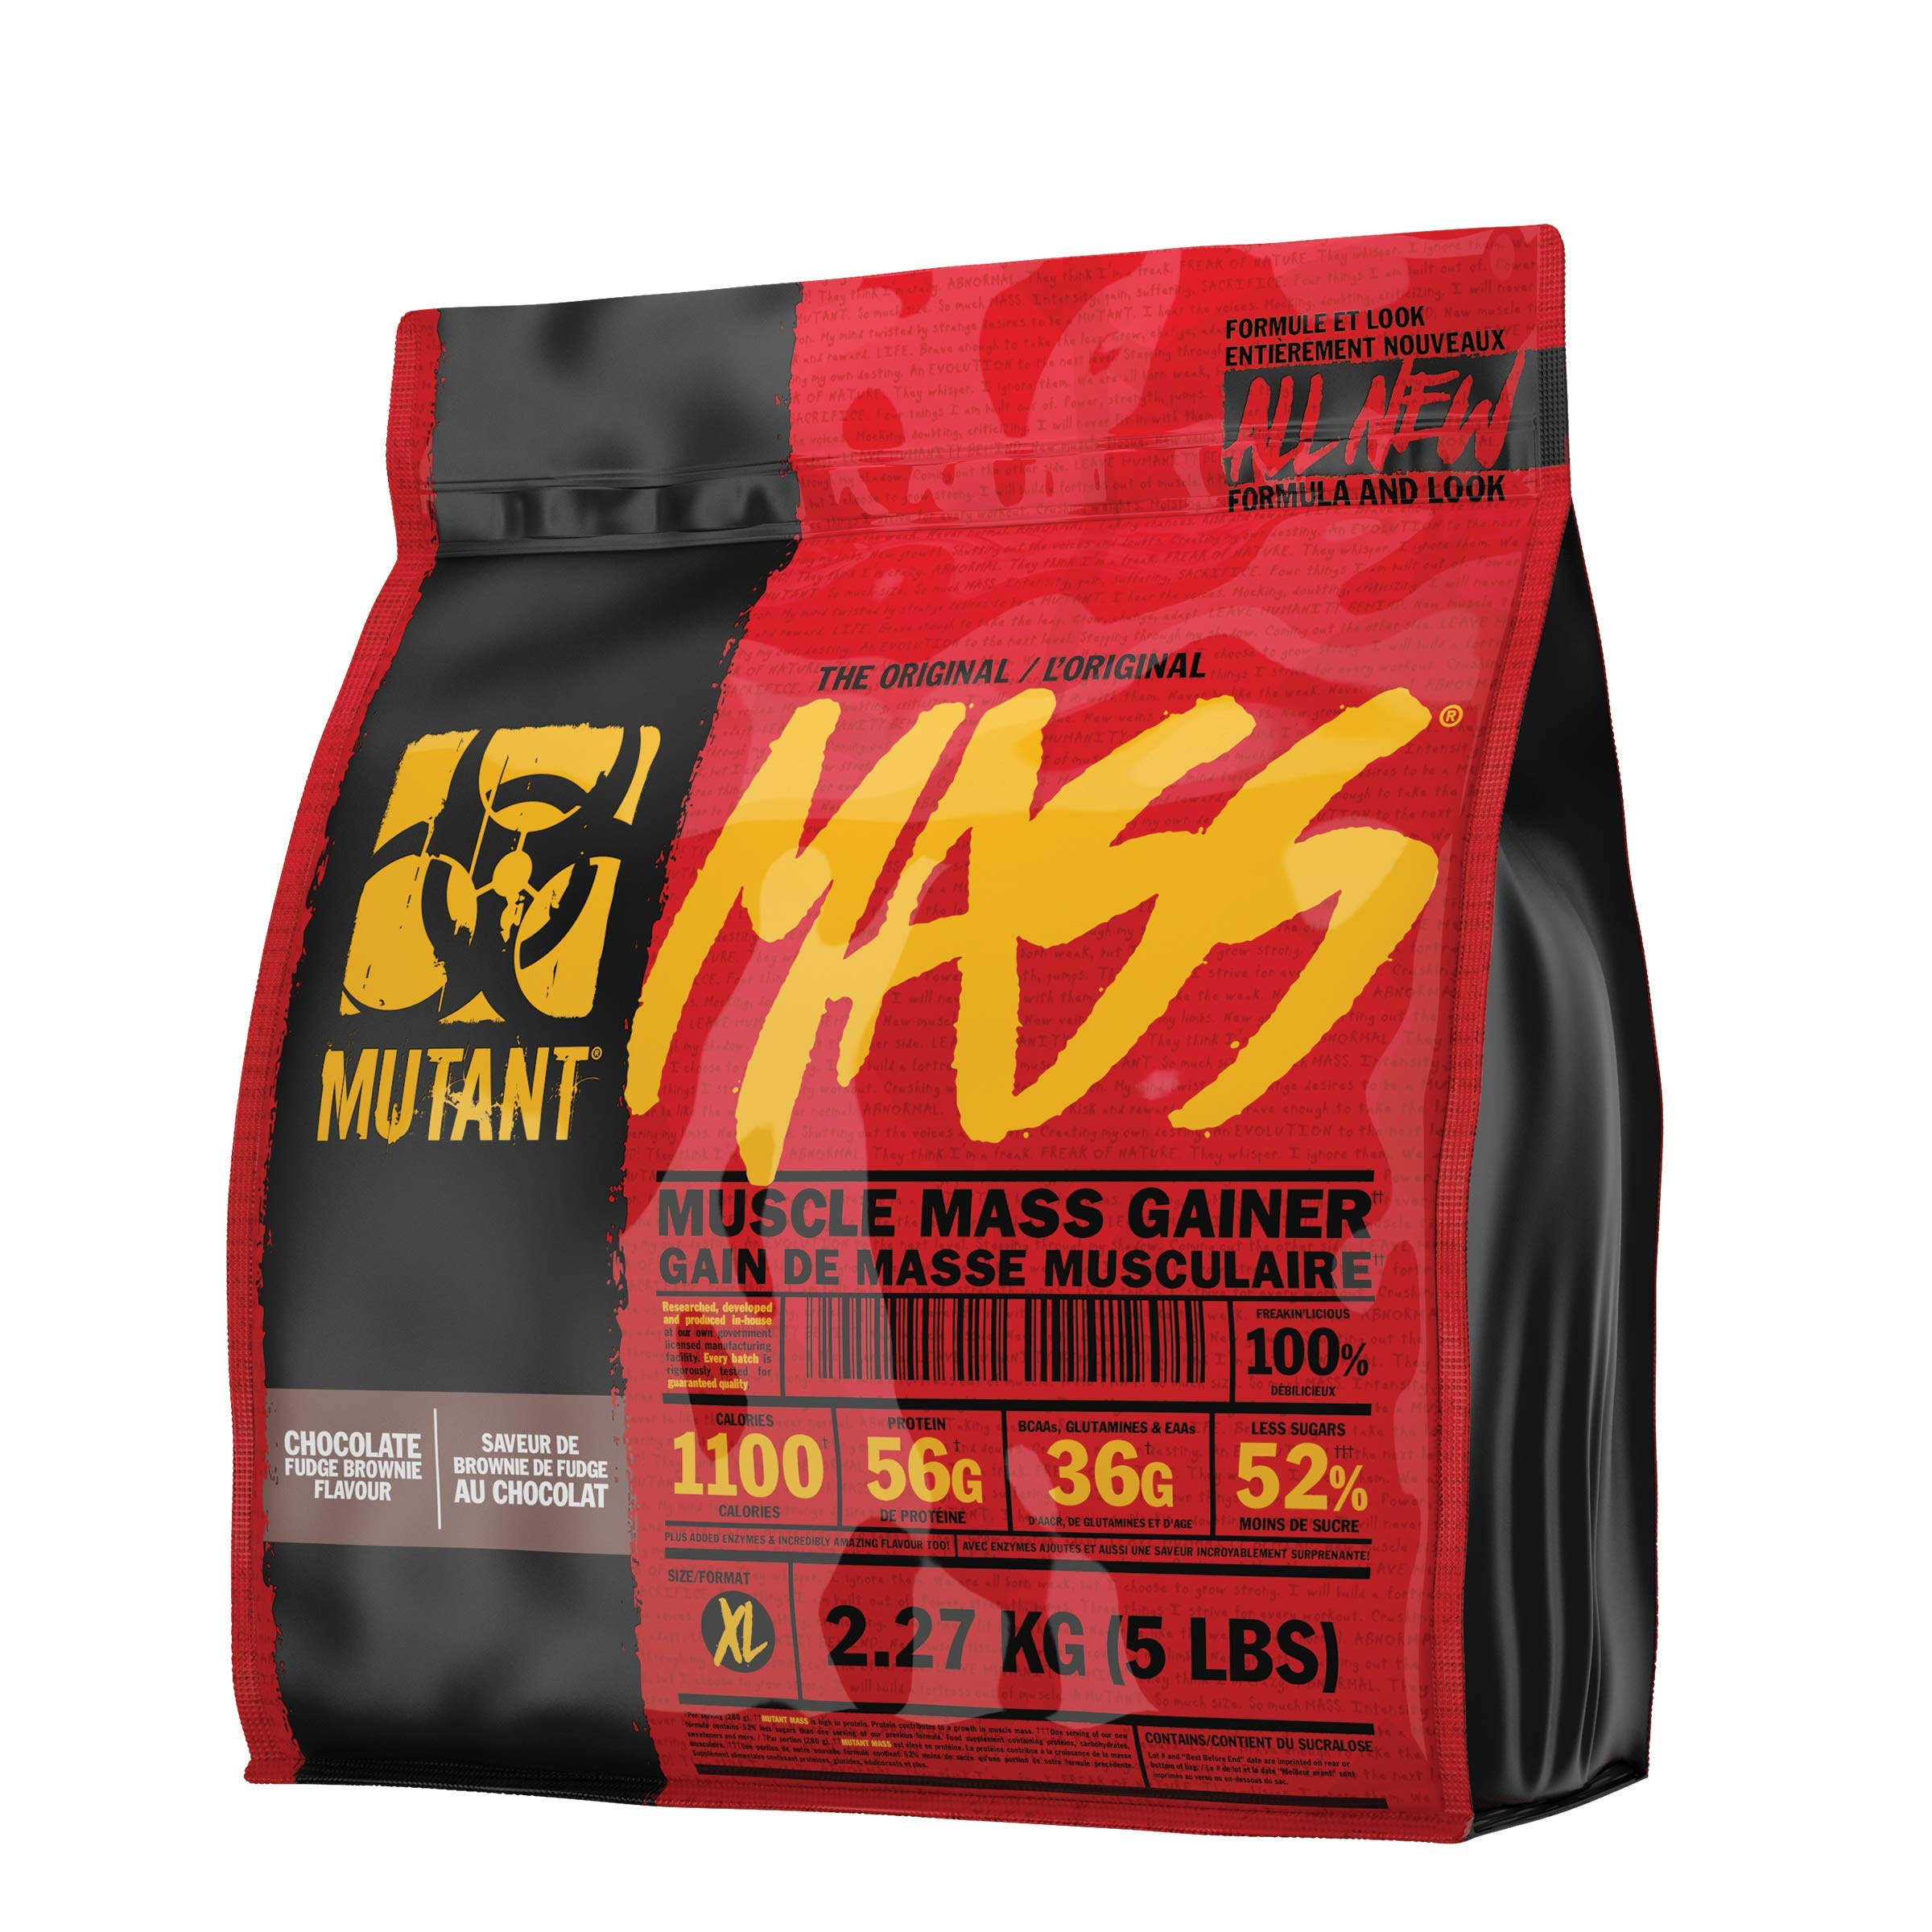 MUTANT Mass Weight Gainer Protein Powder with Whey, and Casein Protein Blend for High-Calorie Workout Shakes, Smoothies, and Drinks, 5 lb - Chocolate Fudge Brownie